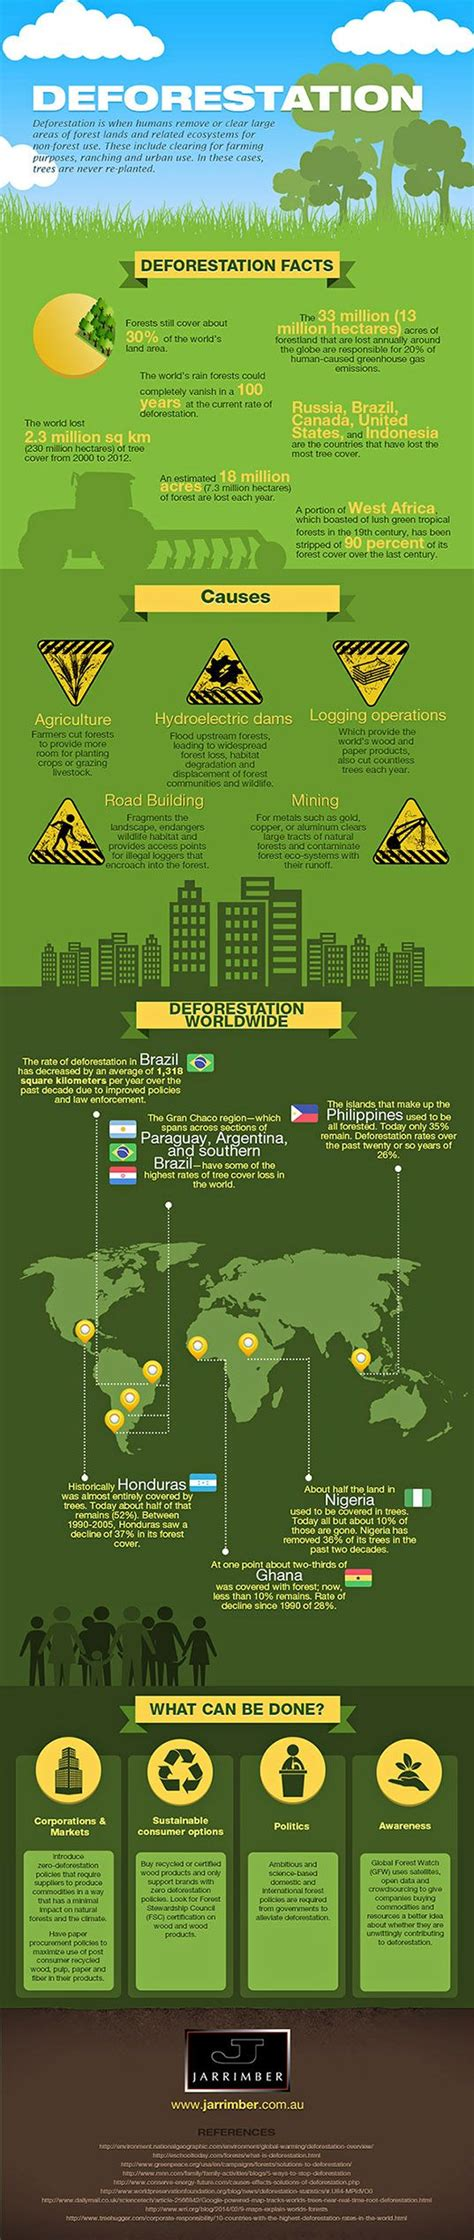 conservation through green building design earth habitat environmental issues infographic and what is on pinterest